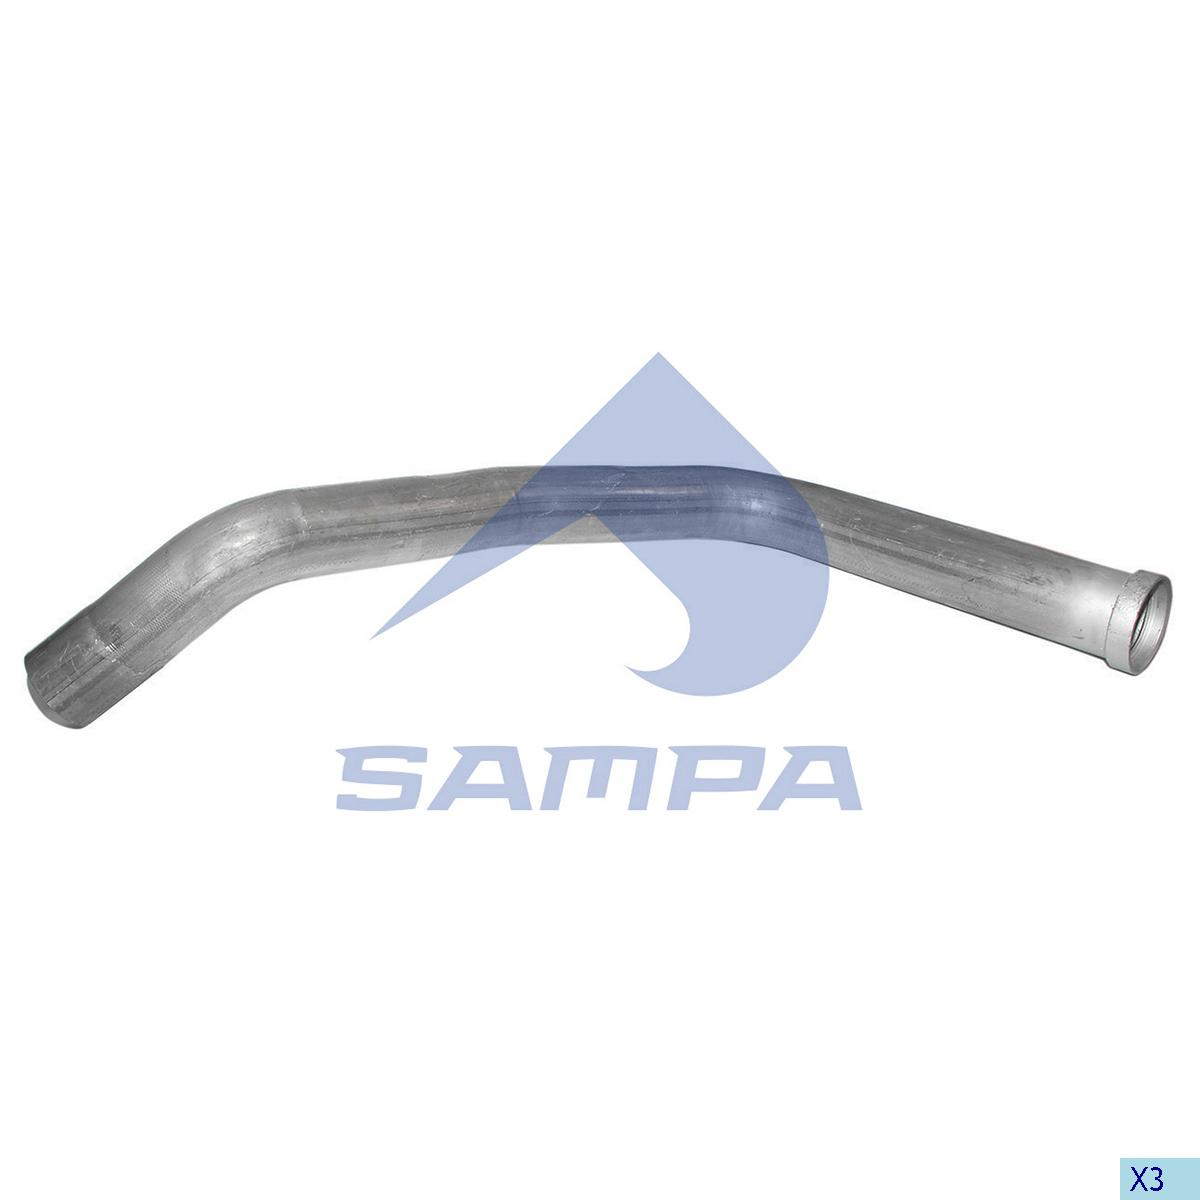 Pipe, Exhaust, Scania, Engine